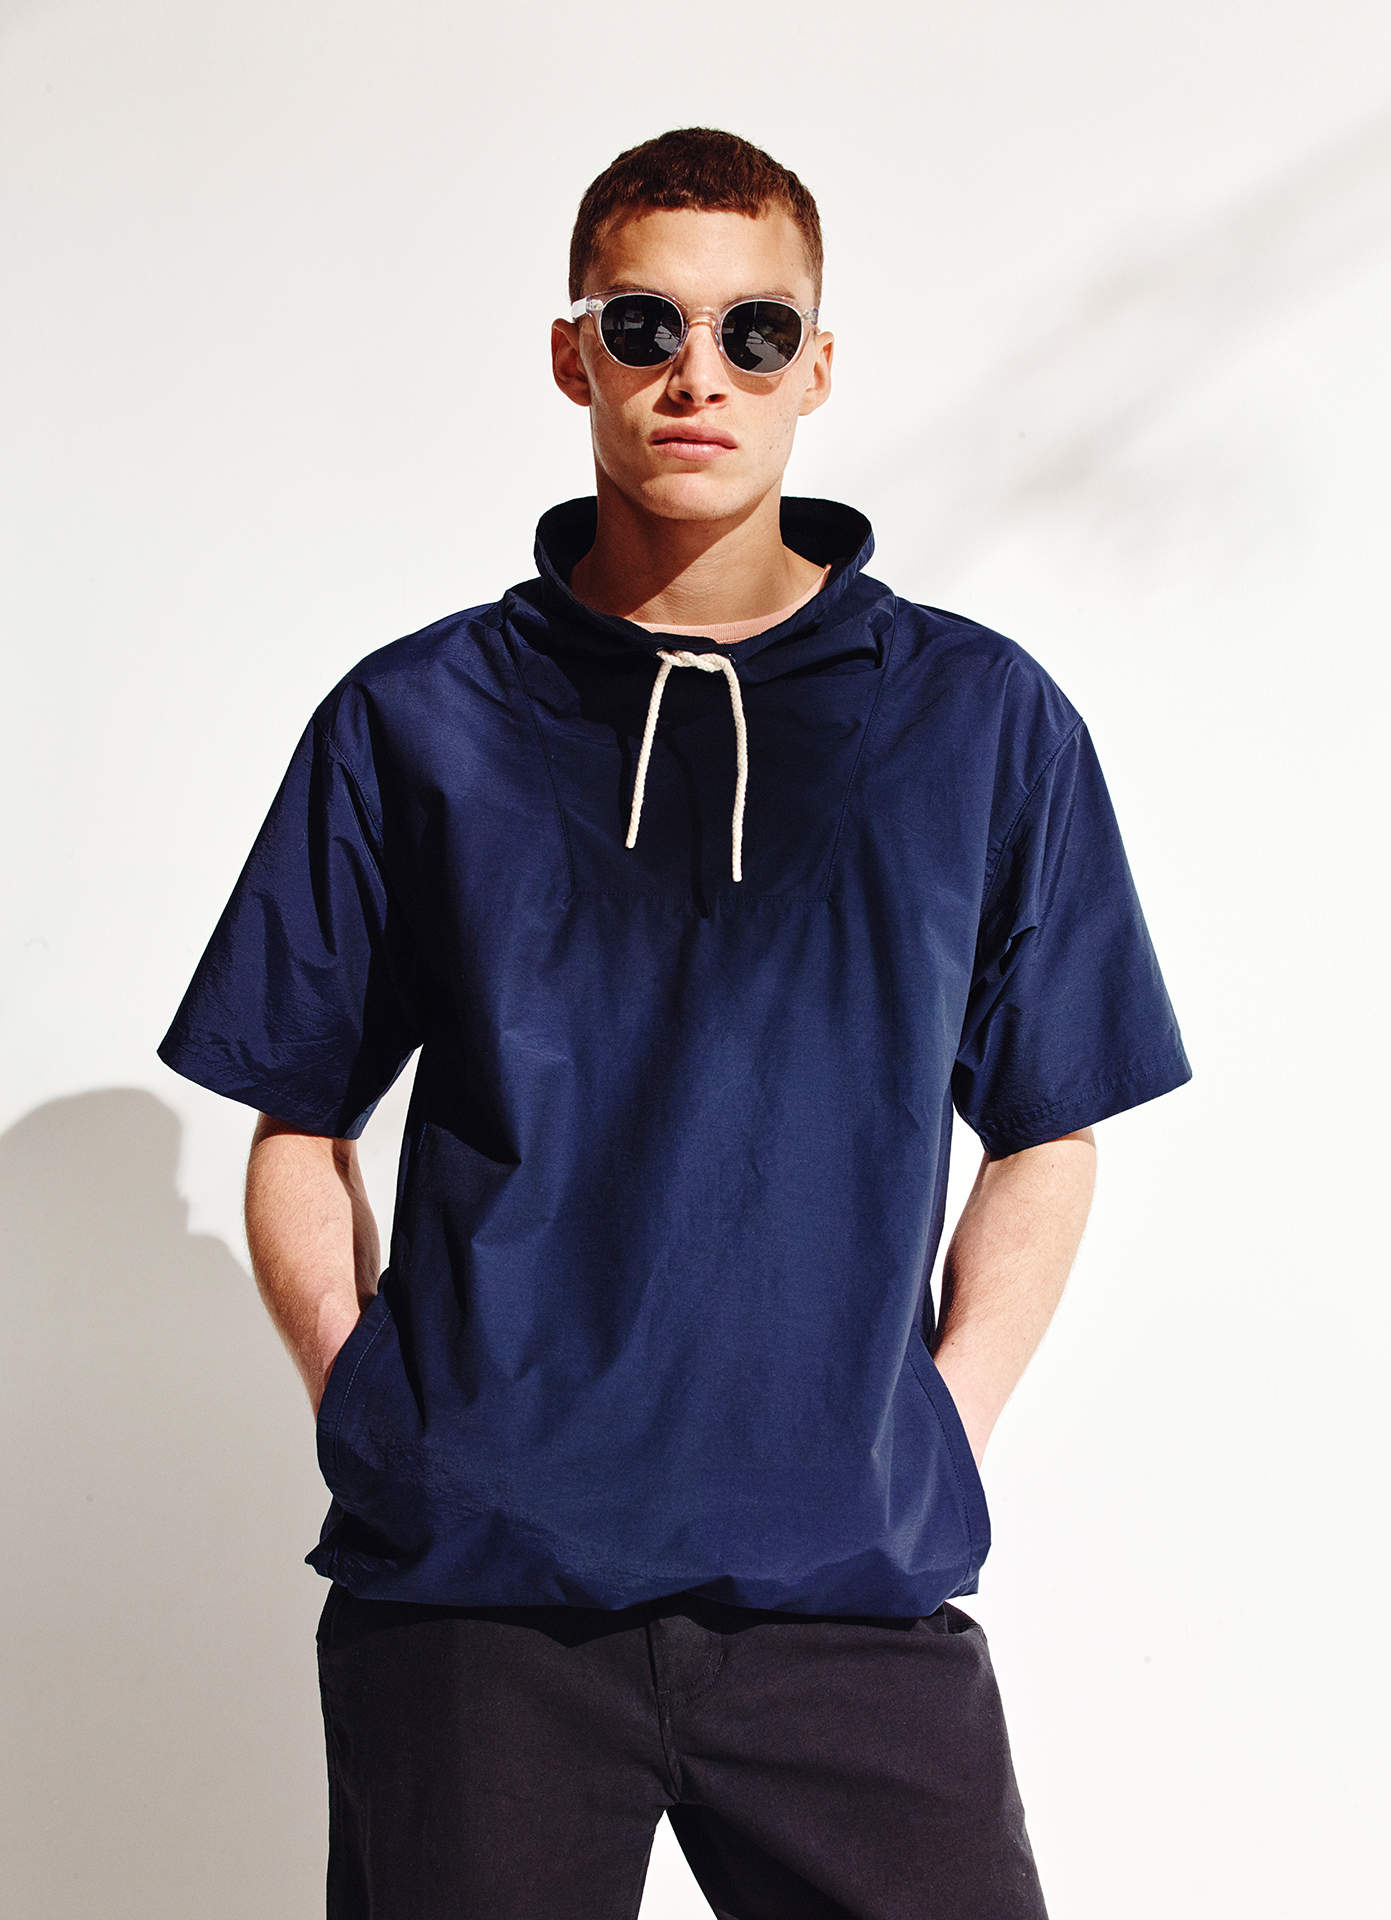 A photo of a model wearing saturdays nyc caleb windbreaker and sunglasses